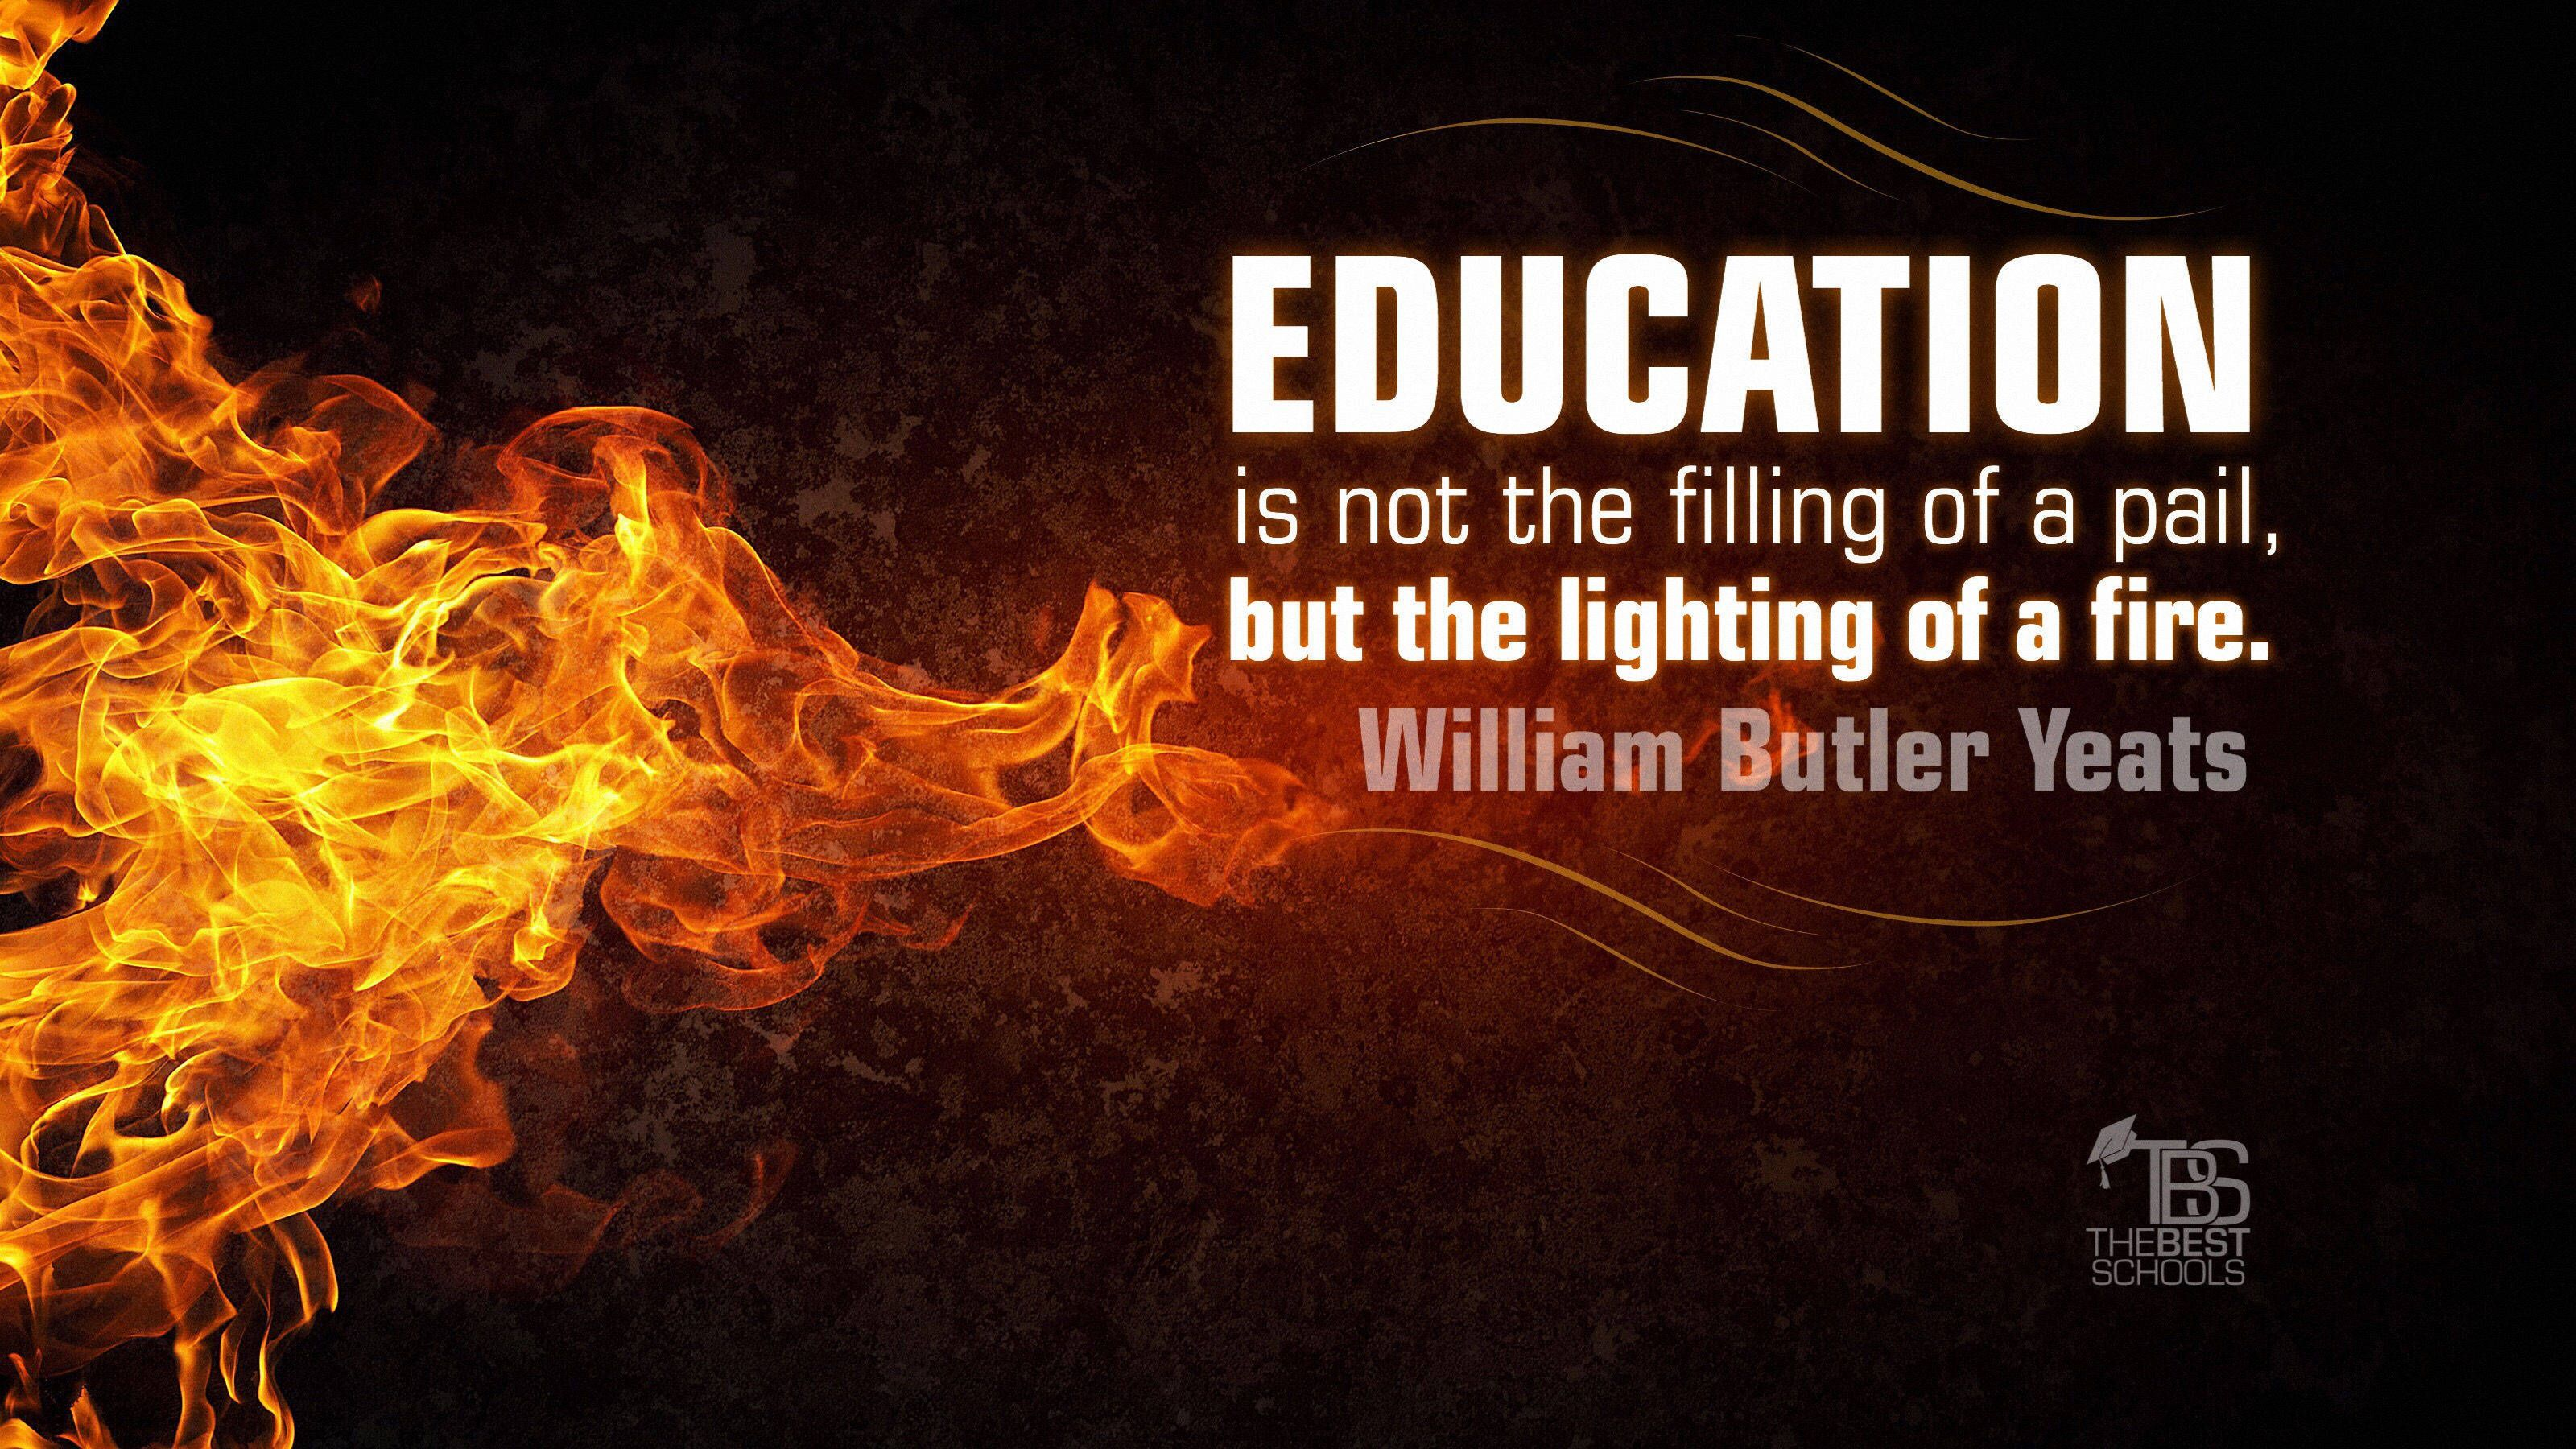 william butler yeats on the lighting of a fire education quotes william butler yeats the lighting of a fire ldquoeducation is not the filling of a pail but the lighting of a fire rdquo william butler yeats william butler yeats